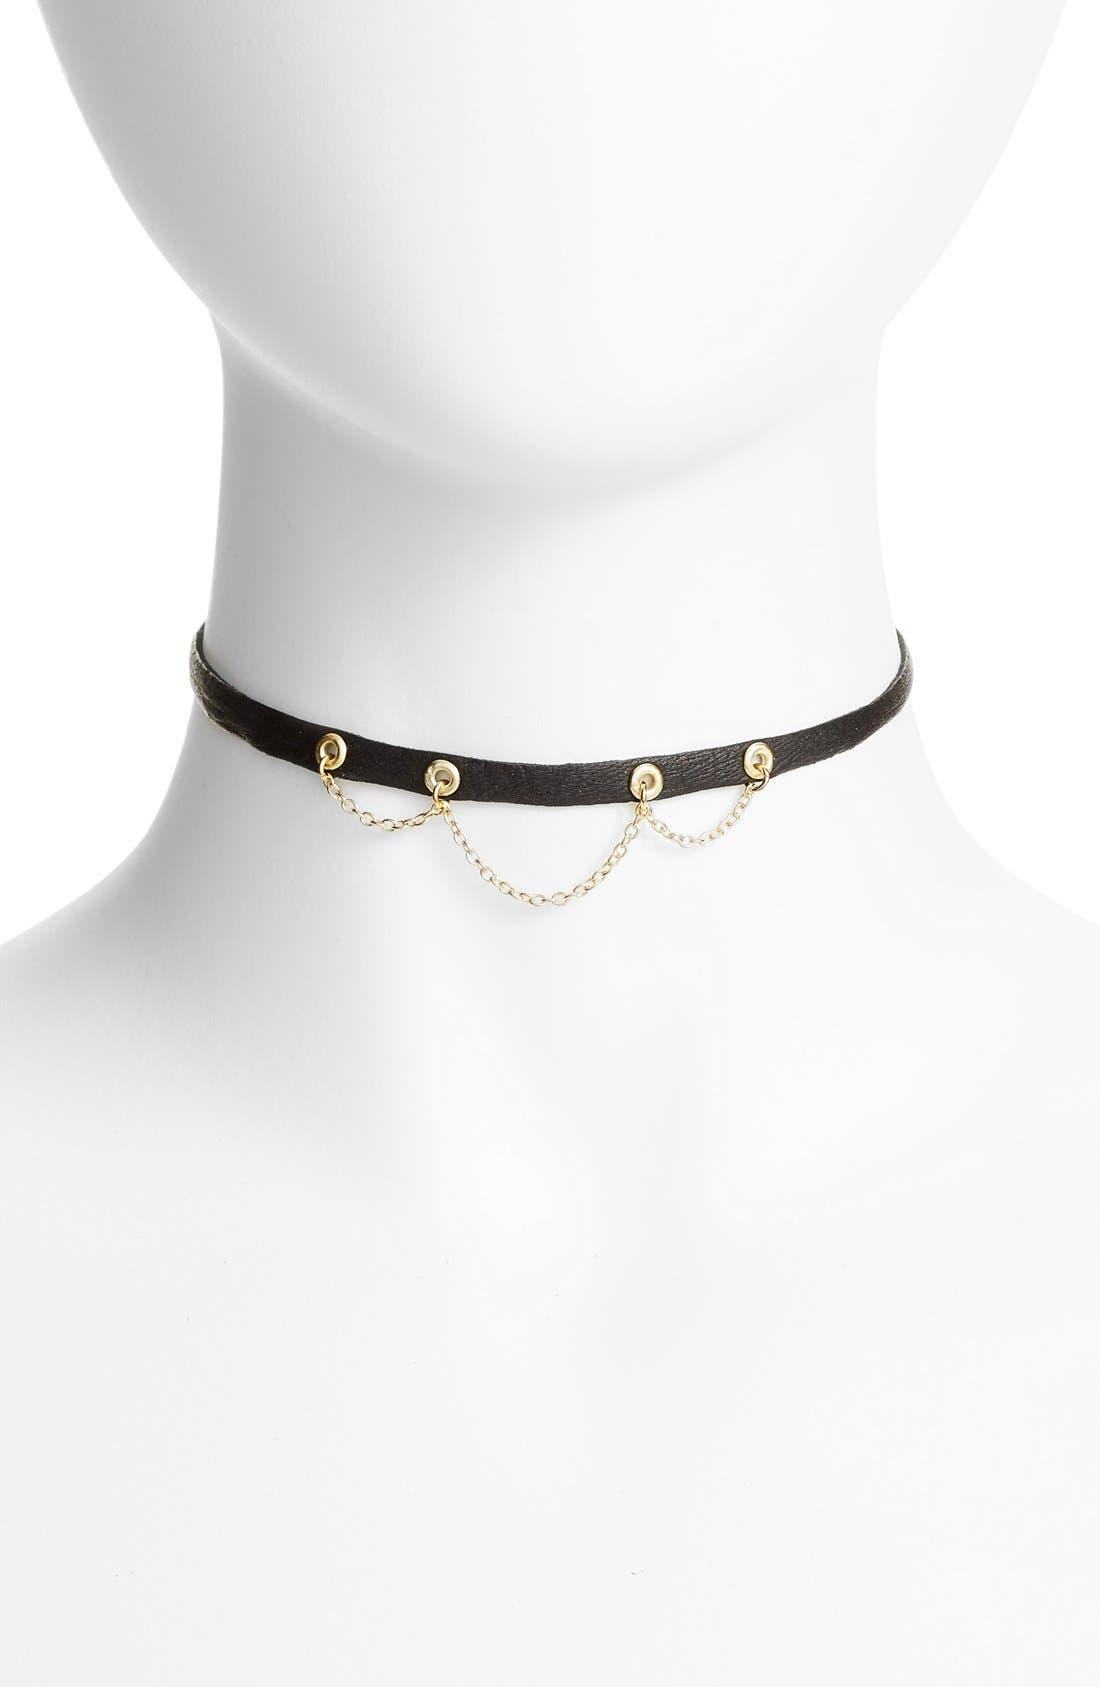 Leather & Chain Choker,                             Main thumbnail 1, color,                             001